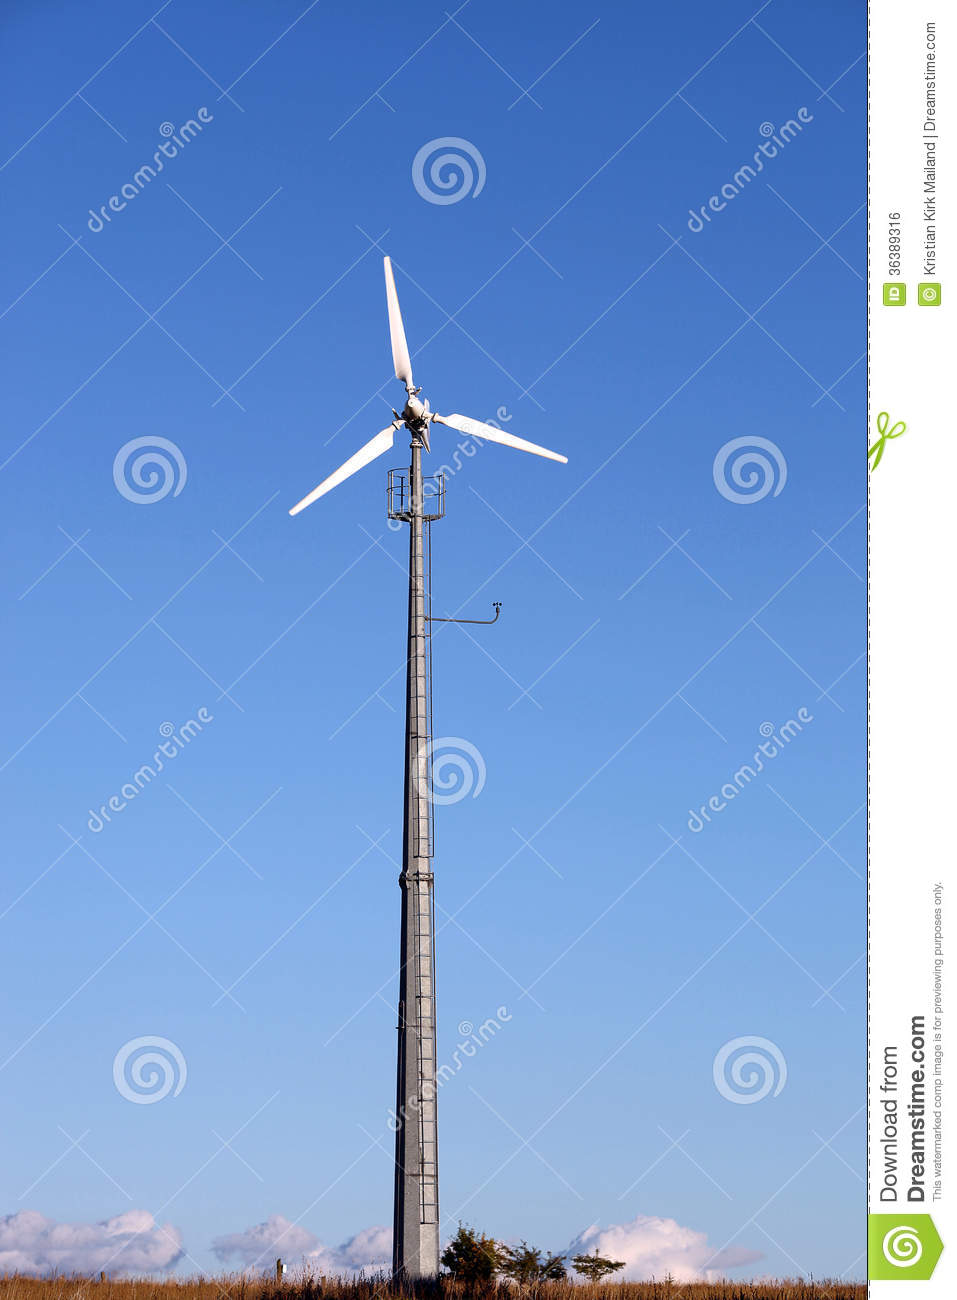 Small Wind Turbine Generating Electricity For The